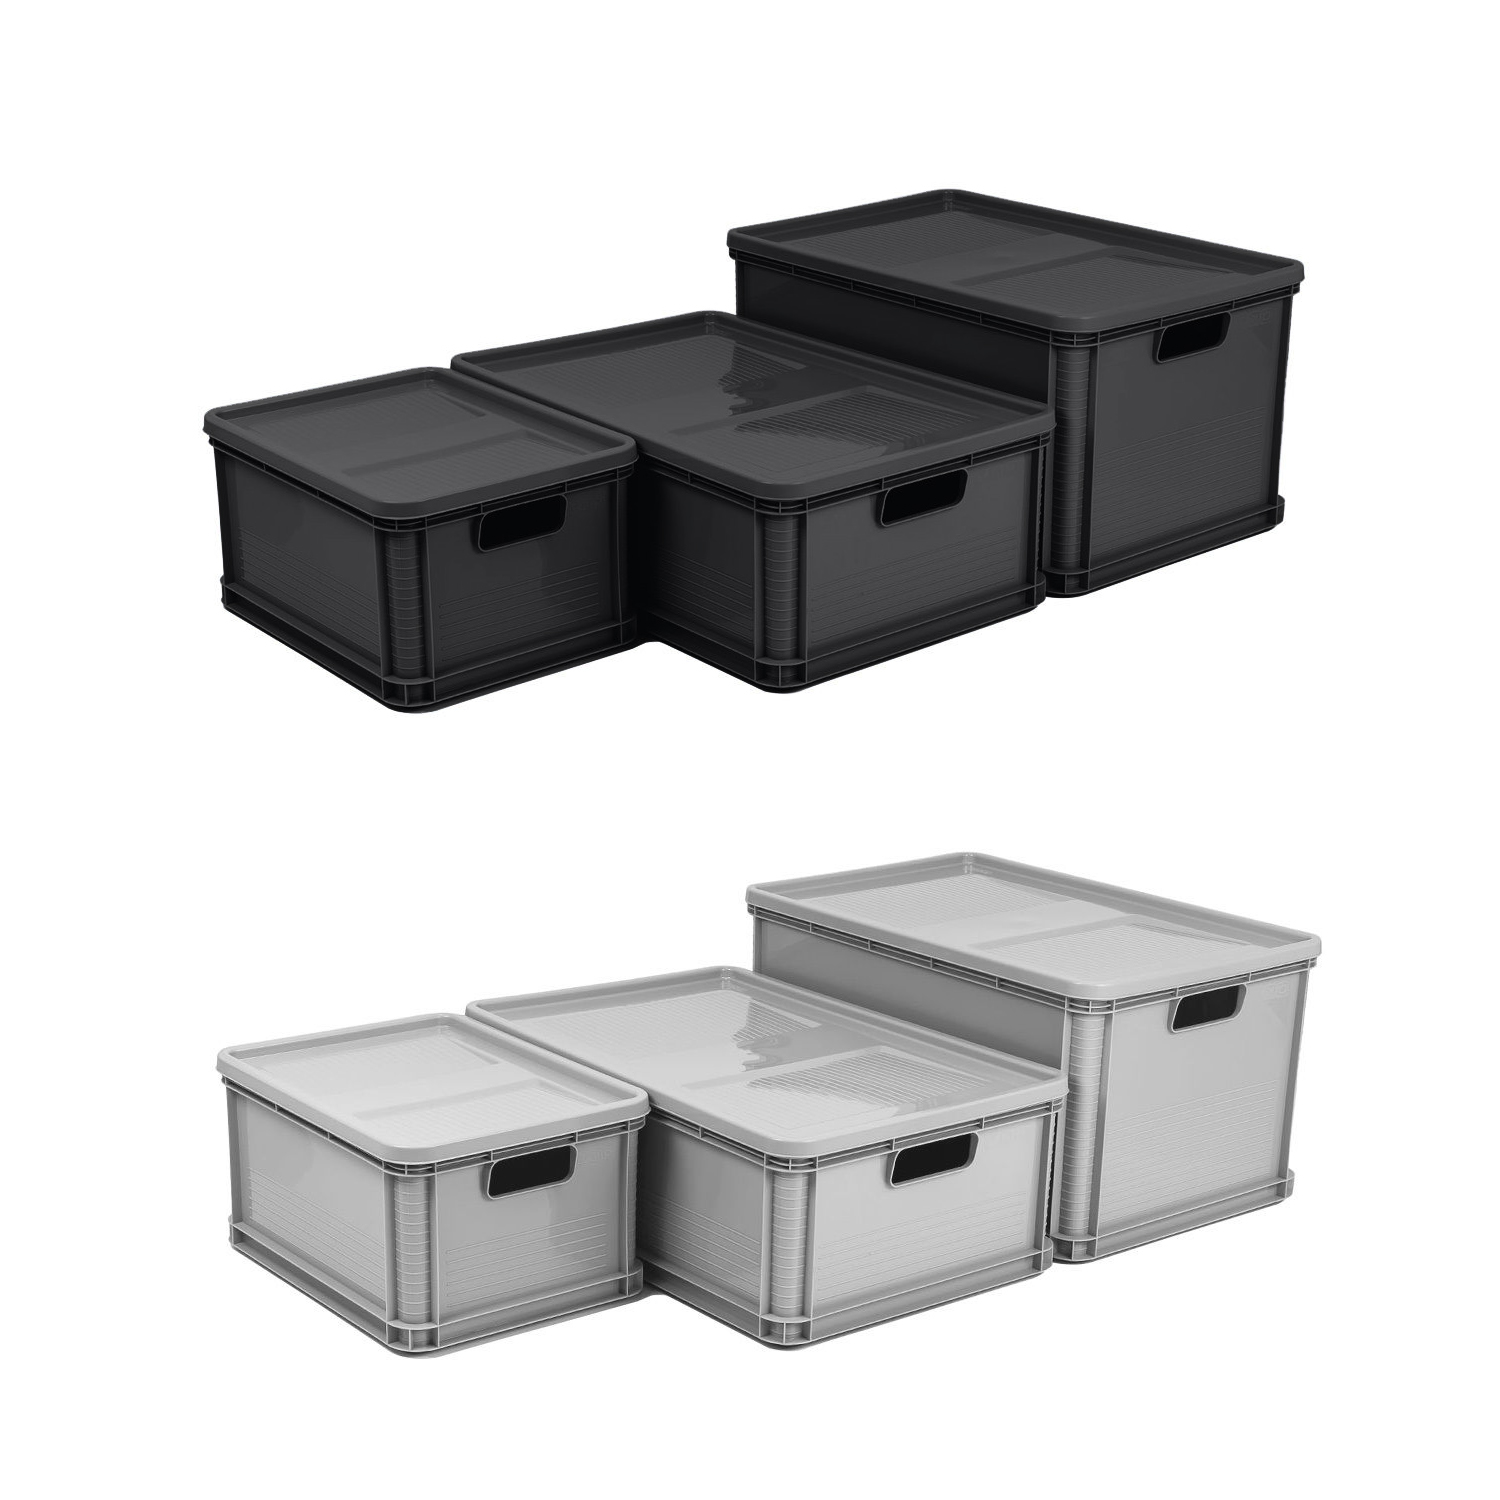 eurobox stapelbox lagerkiste transportbox deckel grau graphit box 20l 45l 64l ebay. Black Bedroom Furniture Sets. Home Design Ideas